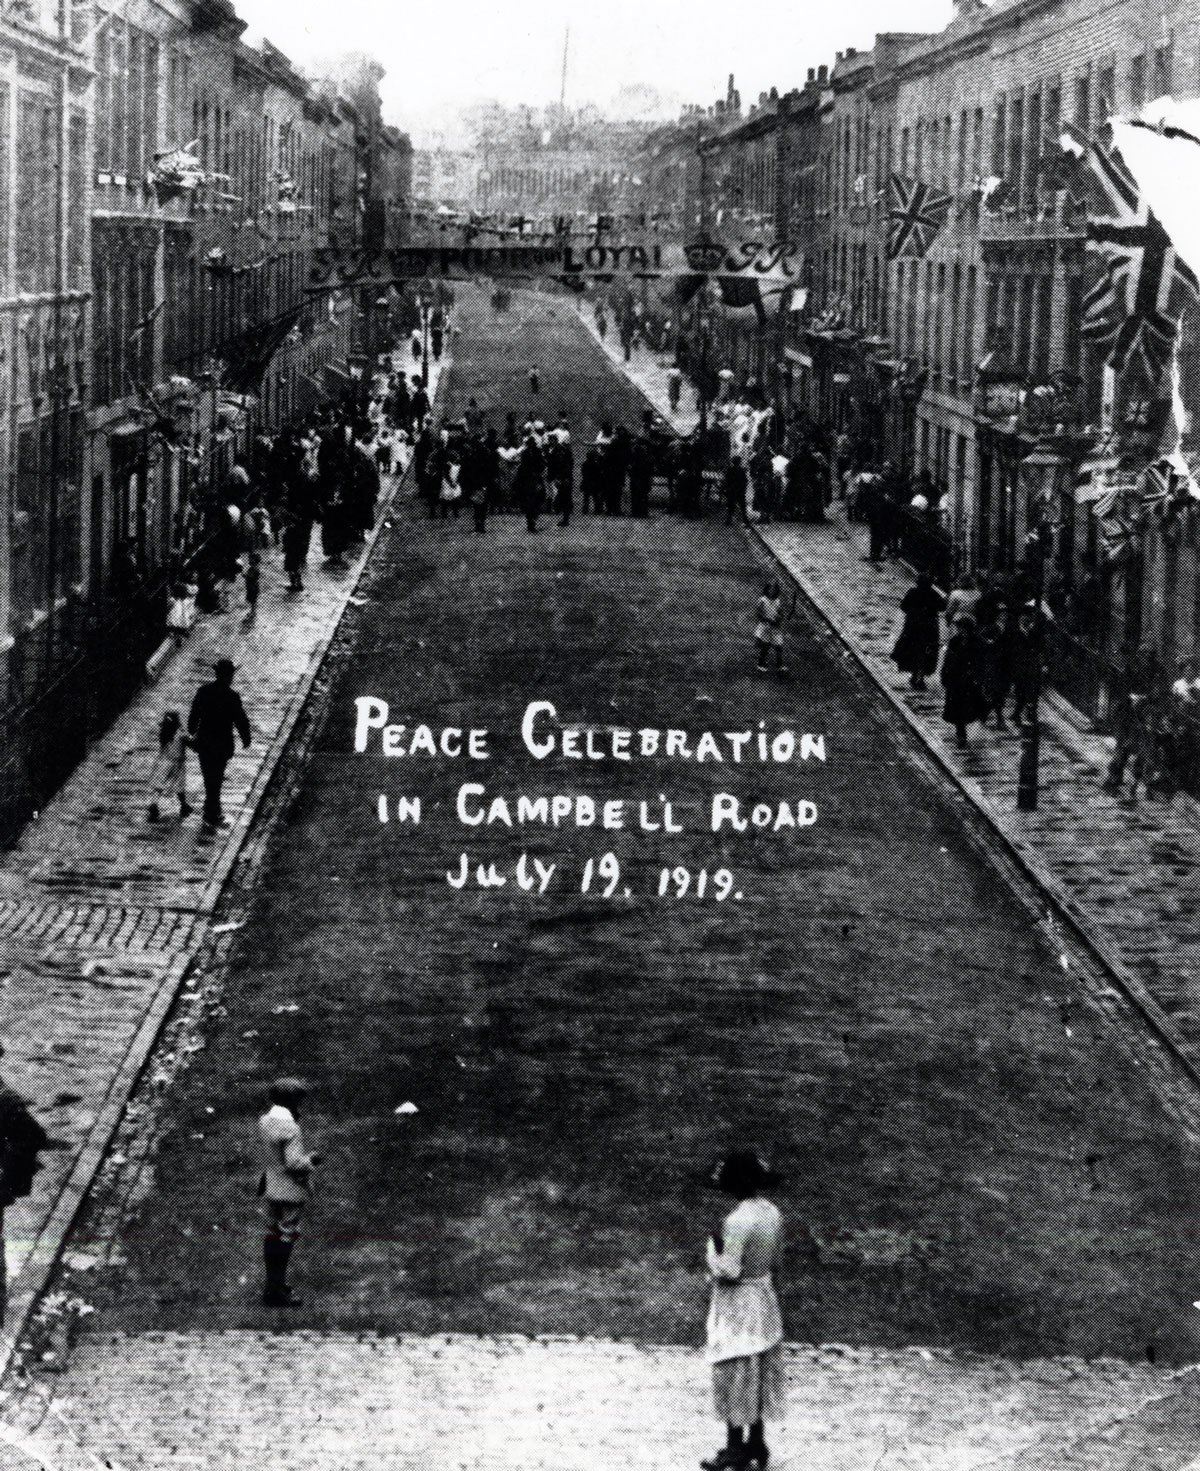 Campbell Road, Finsbury Park, Peace celebration 1919